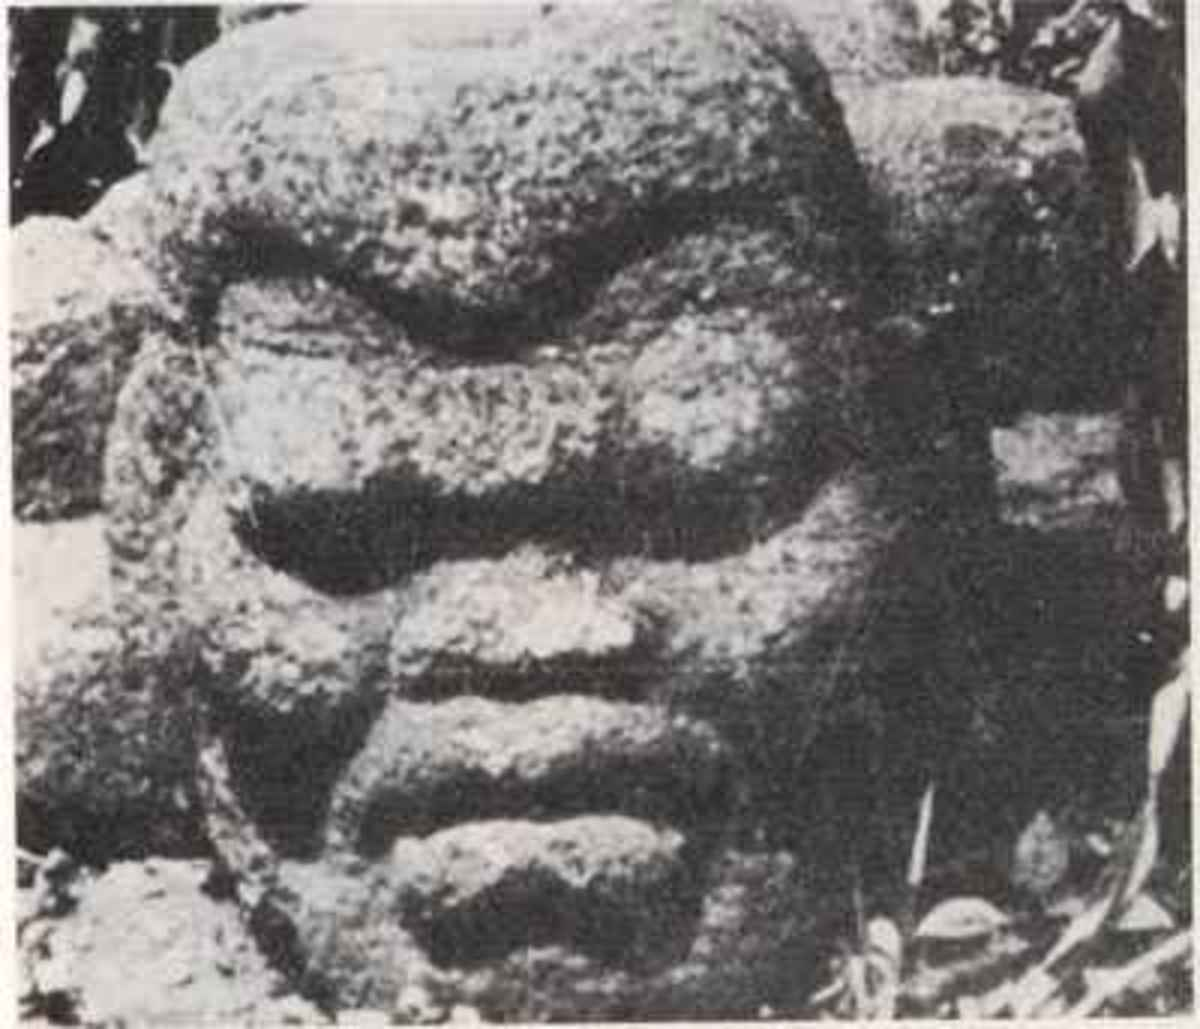 This particular head looks clearly African but also has mild stickler facial features including flattened facial features, drooping eyelids, and prominent lips with a very prominent lip groove